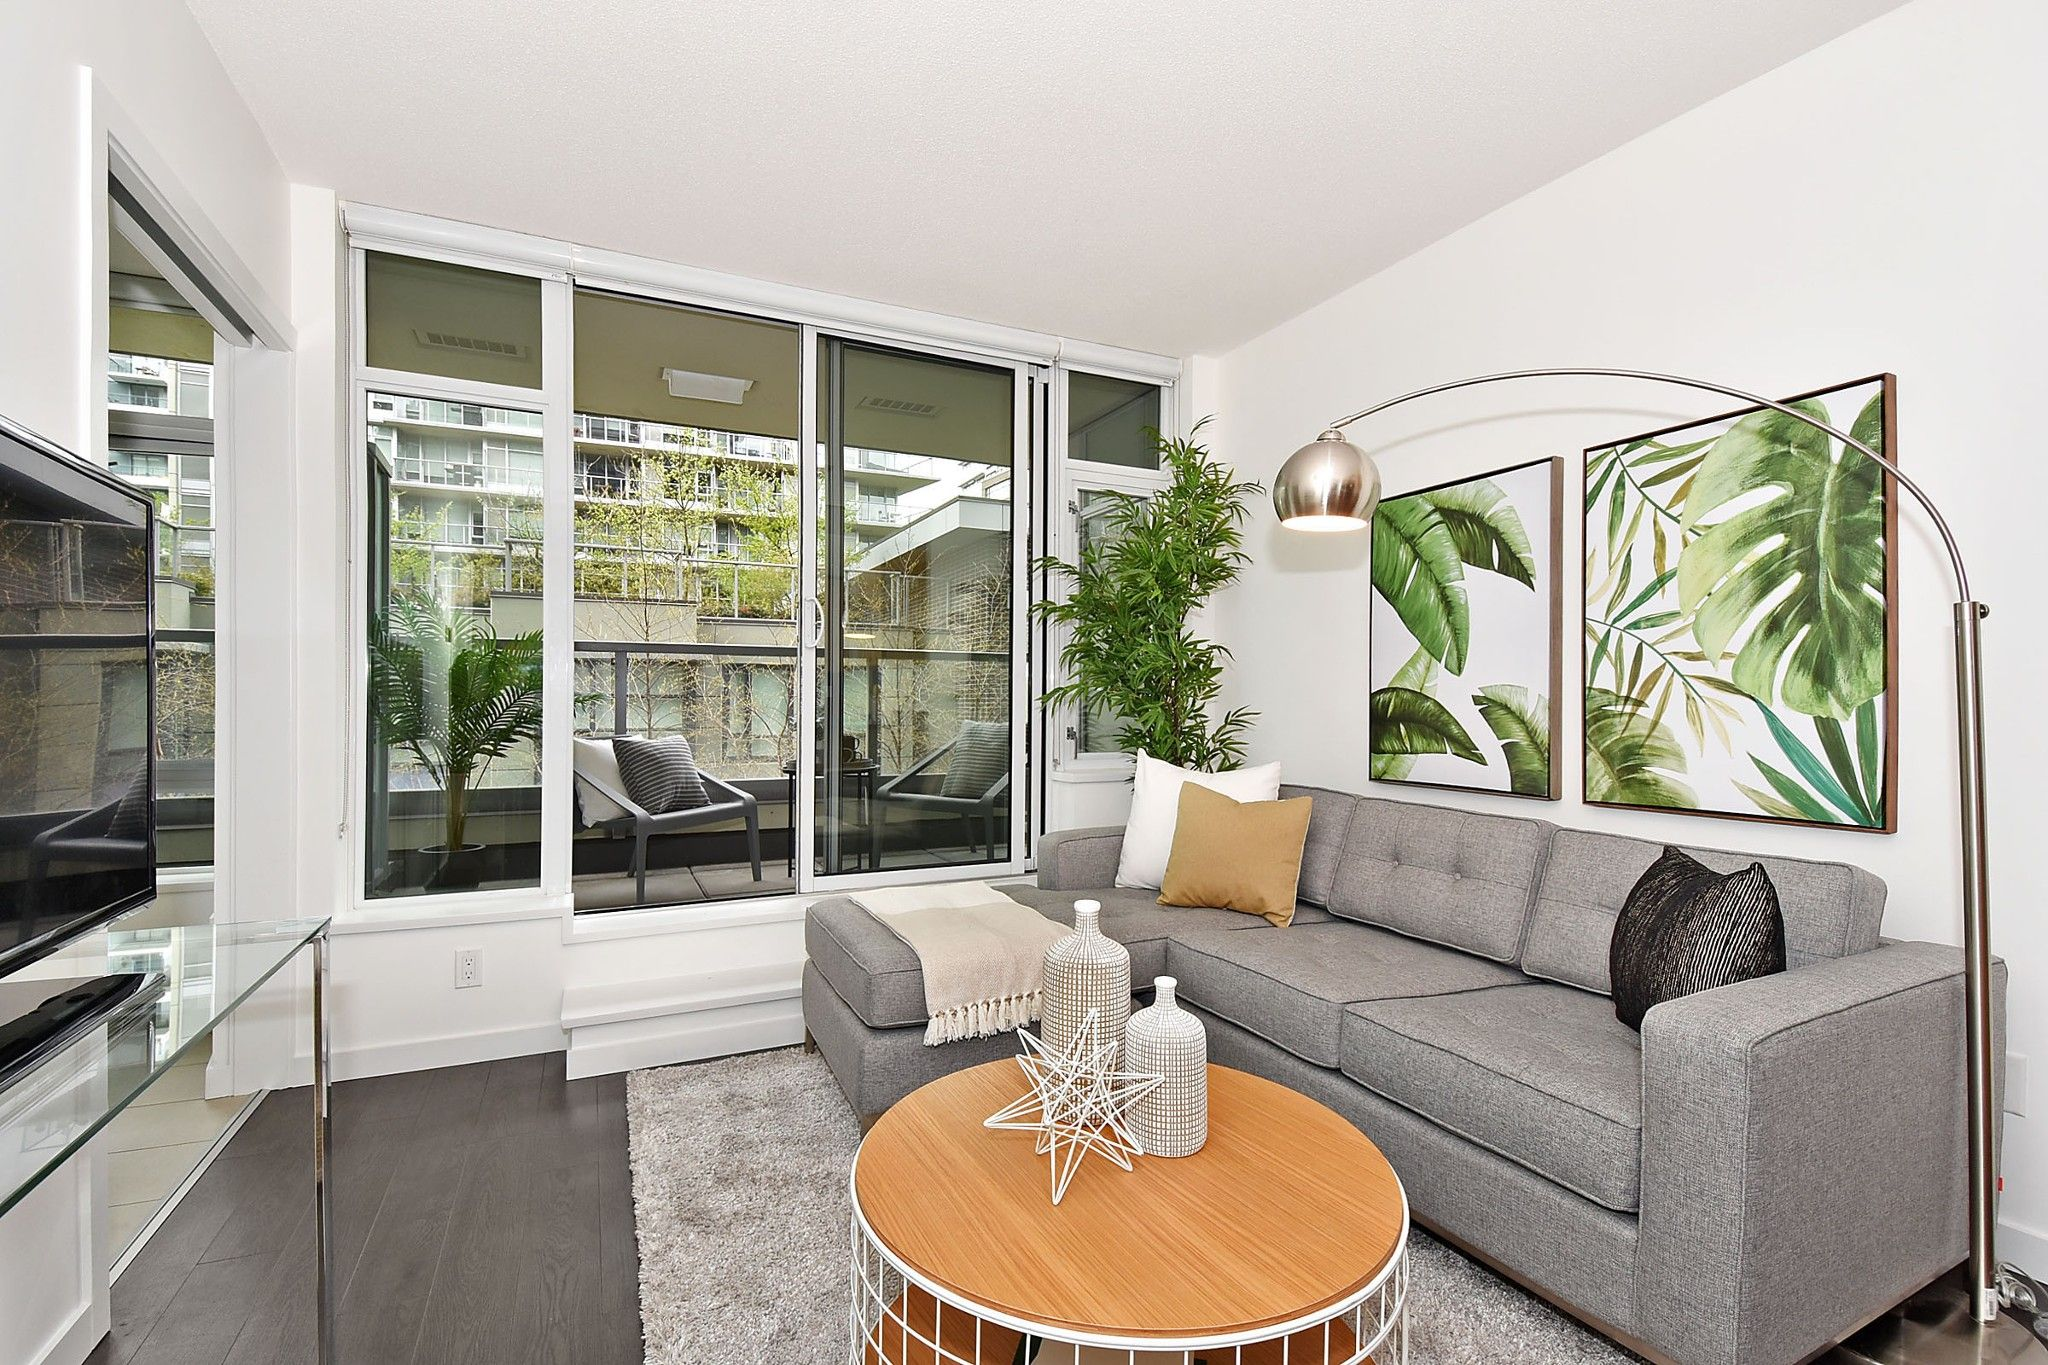 """Photo 3: Photos: 306 138 W 1ST Avenue in Vancouver: False Creek Condo for sale in """"WALL CENTRE FALSE CREEK"""" (Vancouver West)  : MLS®# R2360592"""